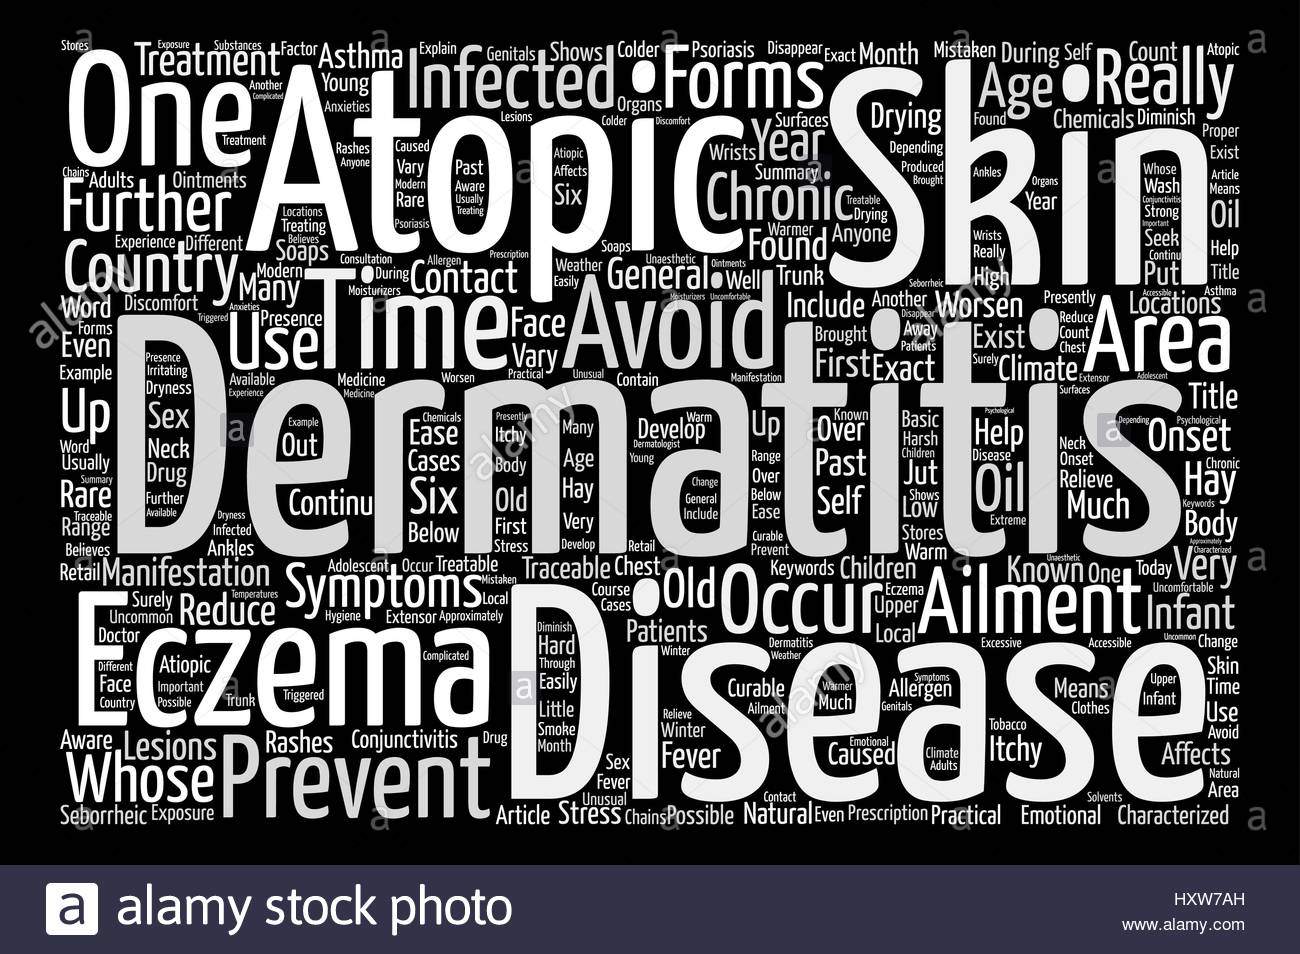 Eczema Or Atopic Dermatitis Anyone Word Cloud Concept Text 1300x954